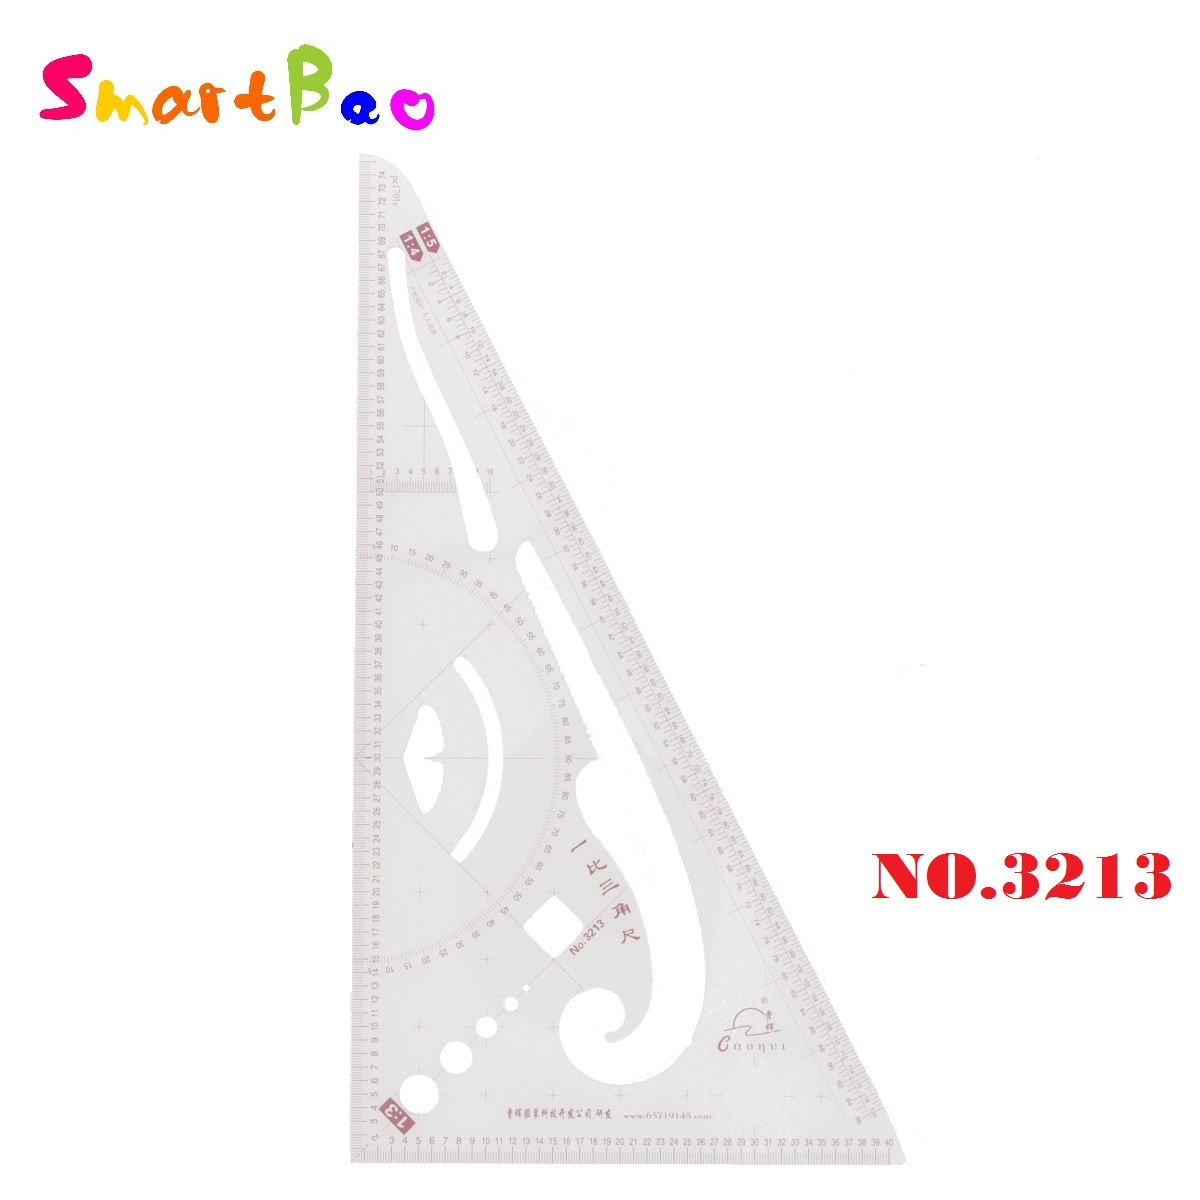 1:3 1:4 1:5 Scale Ruler Triangular Ruler Patchwork Ruler Clothes Measure Design